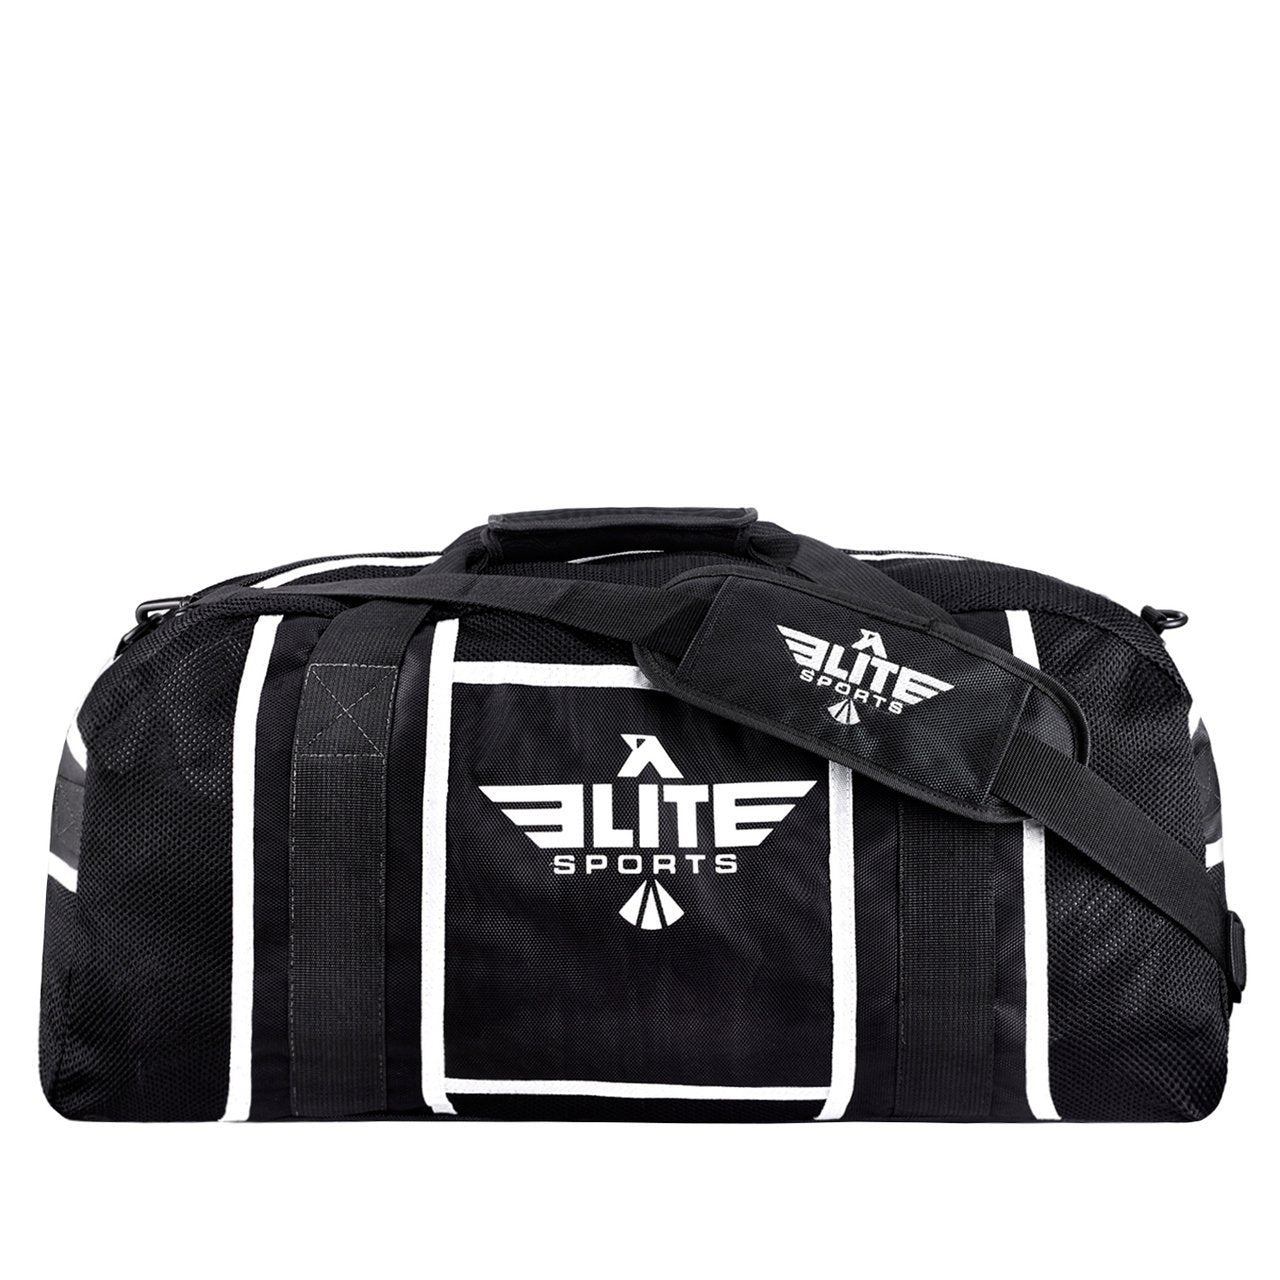 Elite Sports Mesh Series Boxing MMA BJJ Gear Gym Duffel Bags